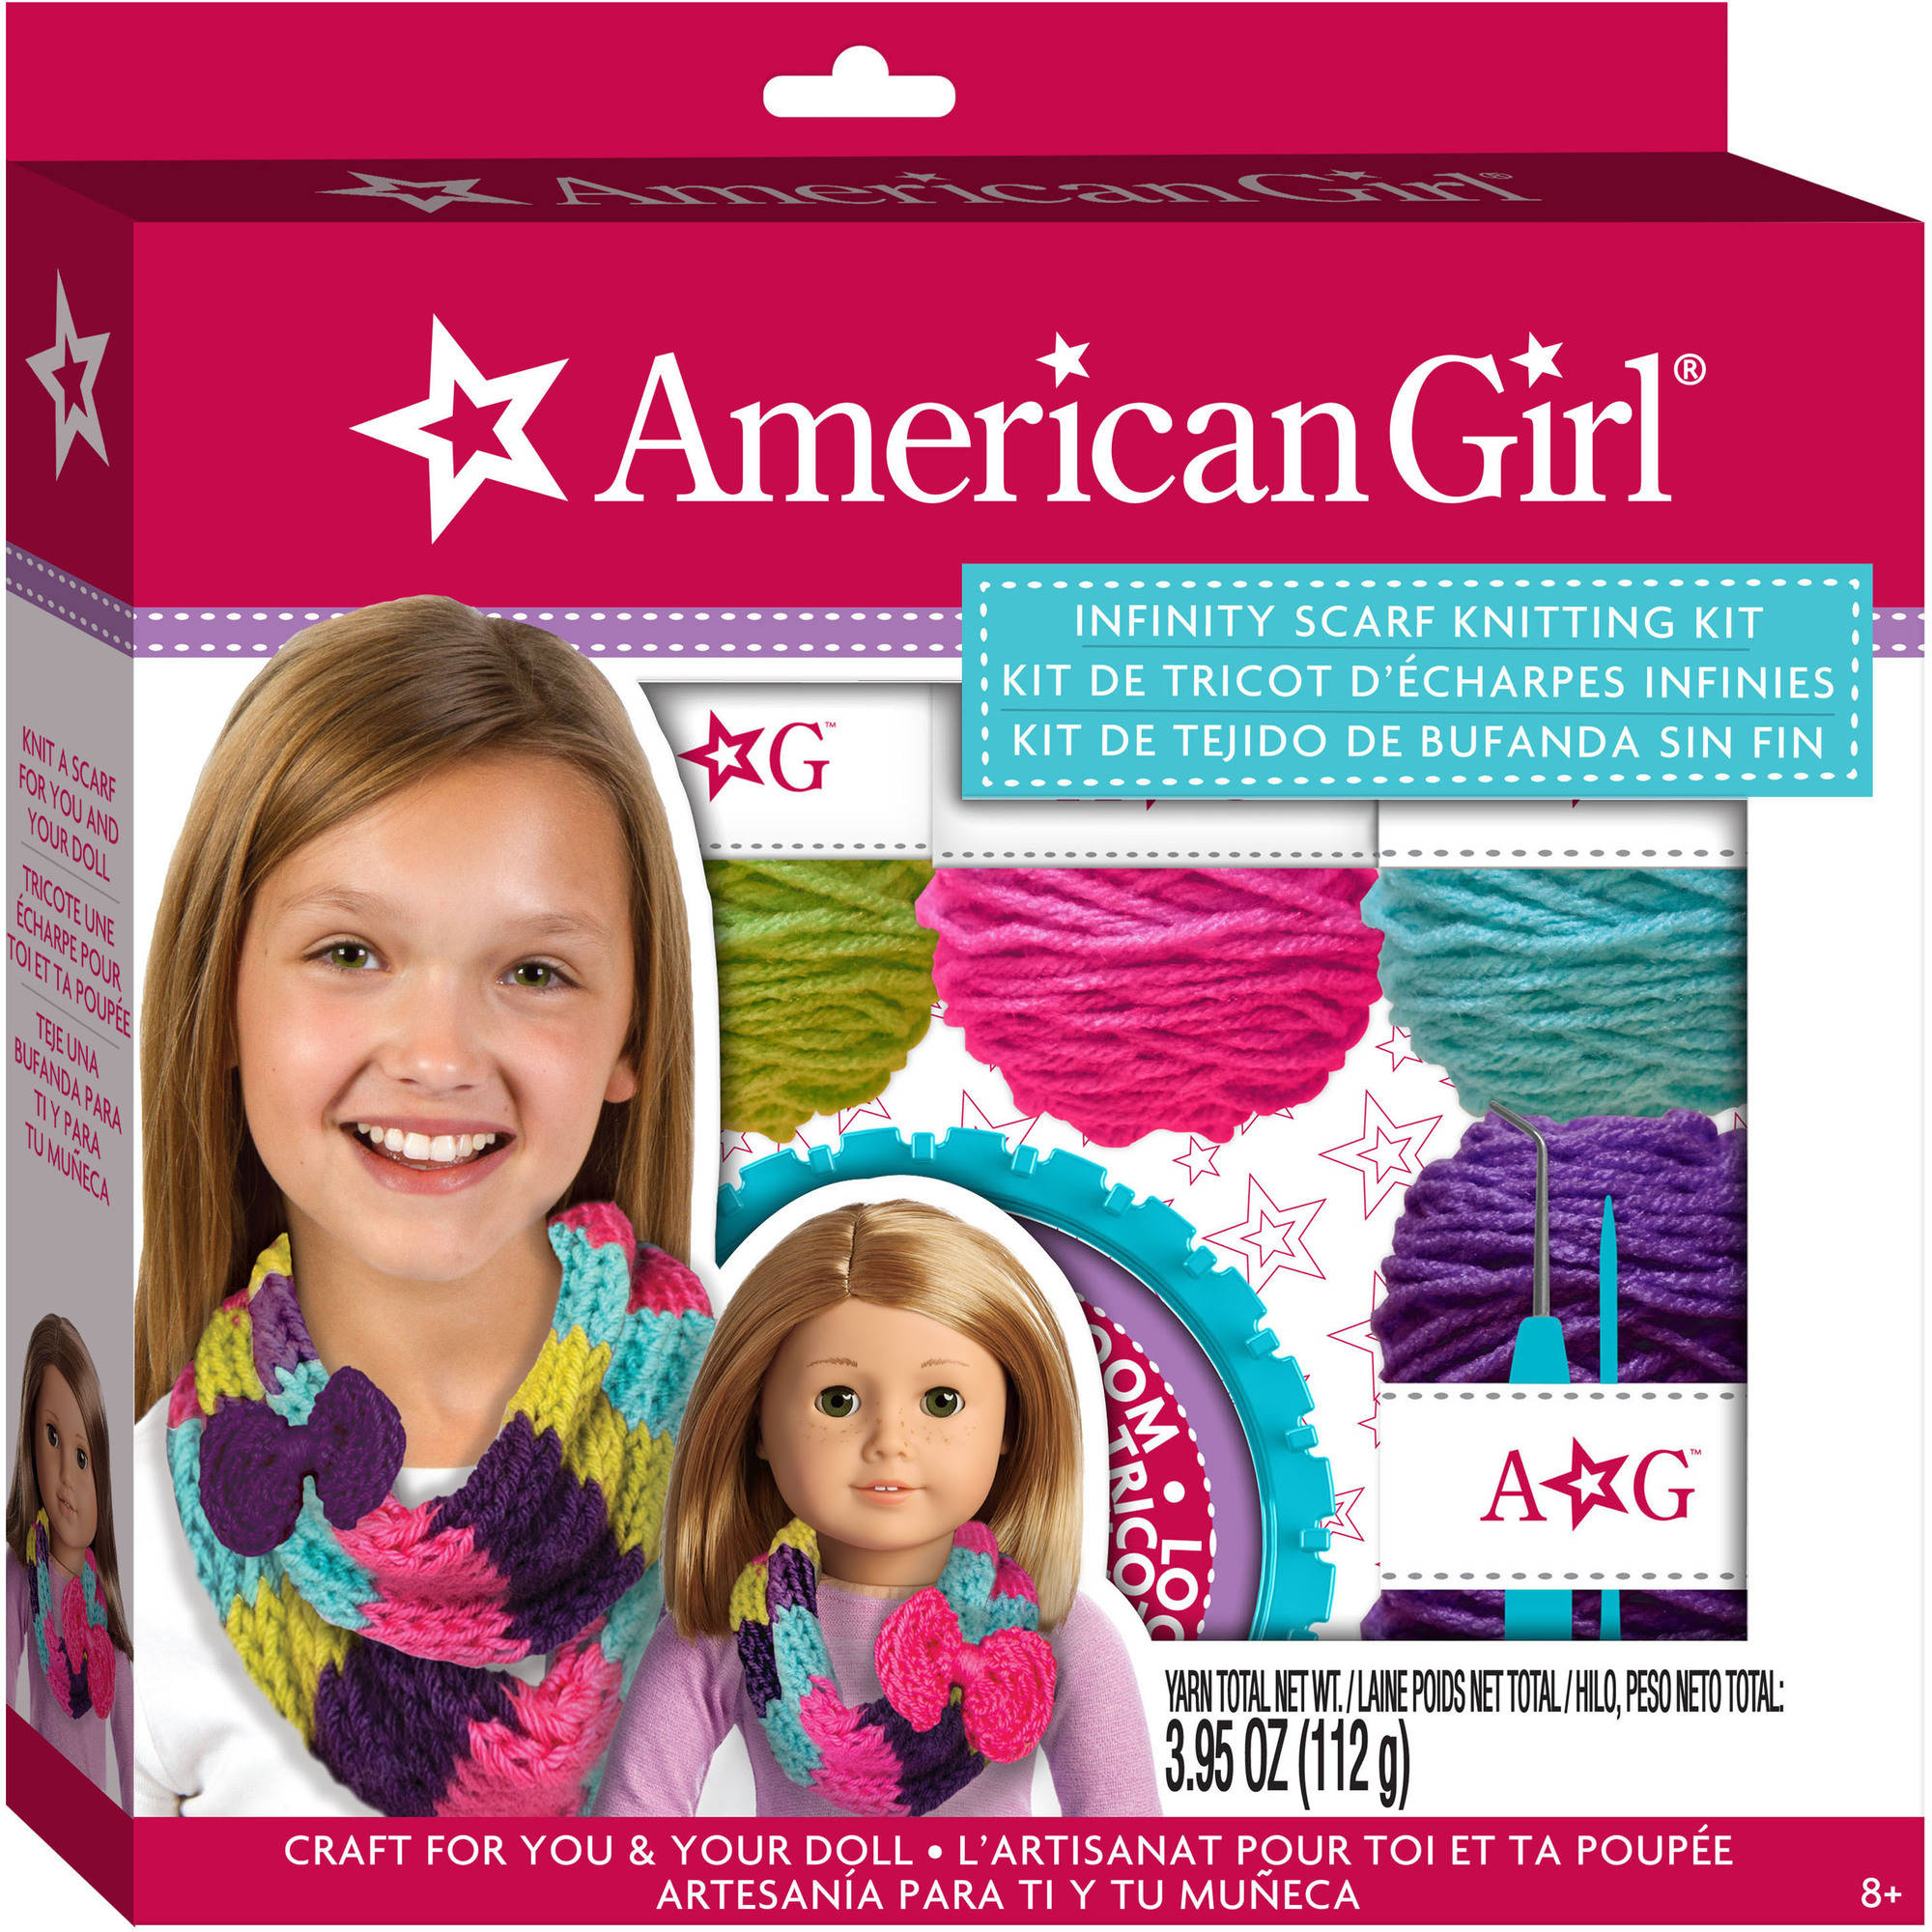 American Girl Infinity Scarf Knitting Kit by Generic